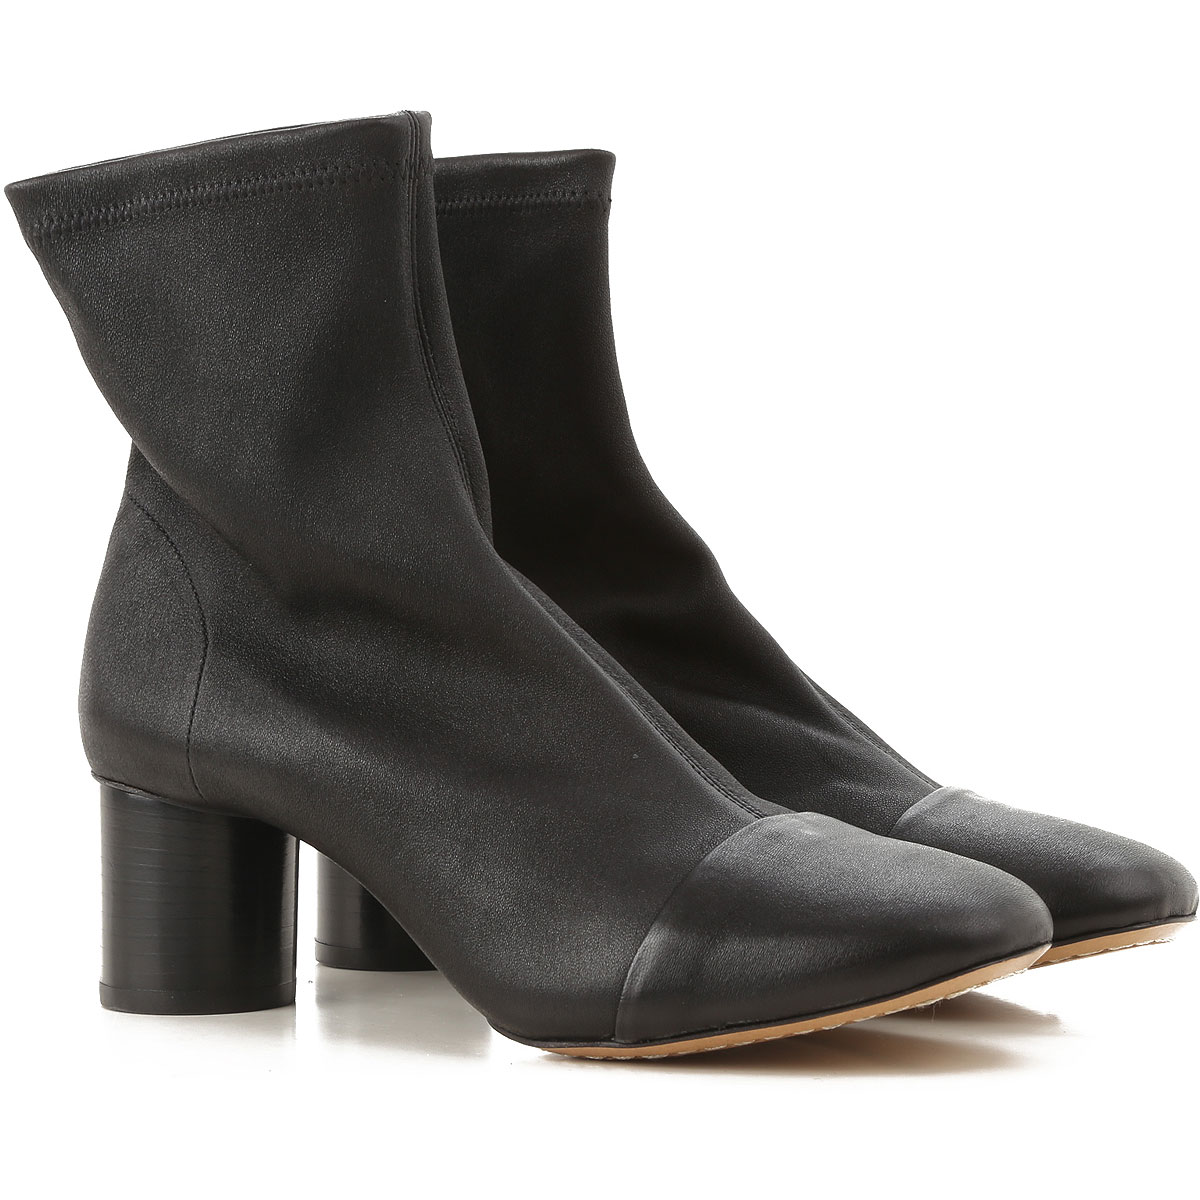 Image of Isabel Marant Boots for Women, Booties, Black, Leather, 2017, 10 5 6 7